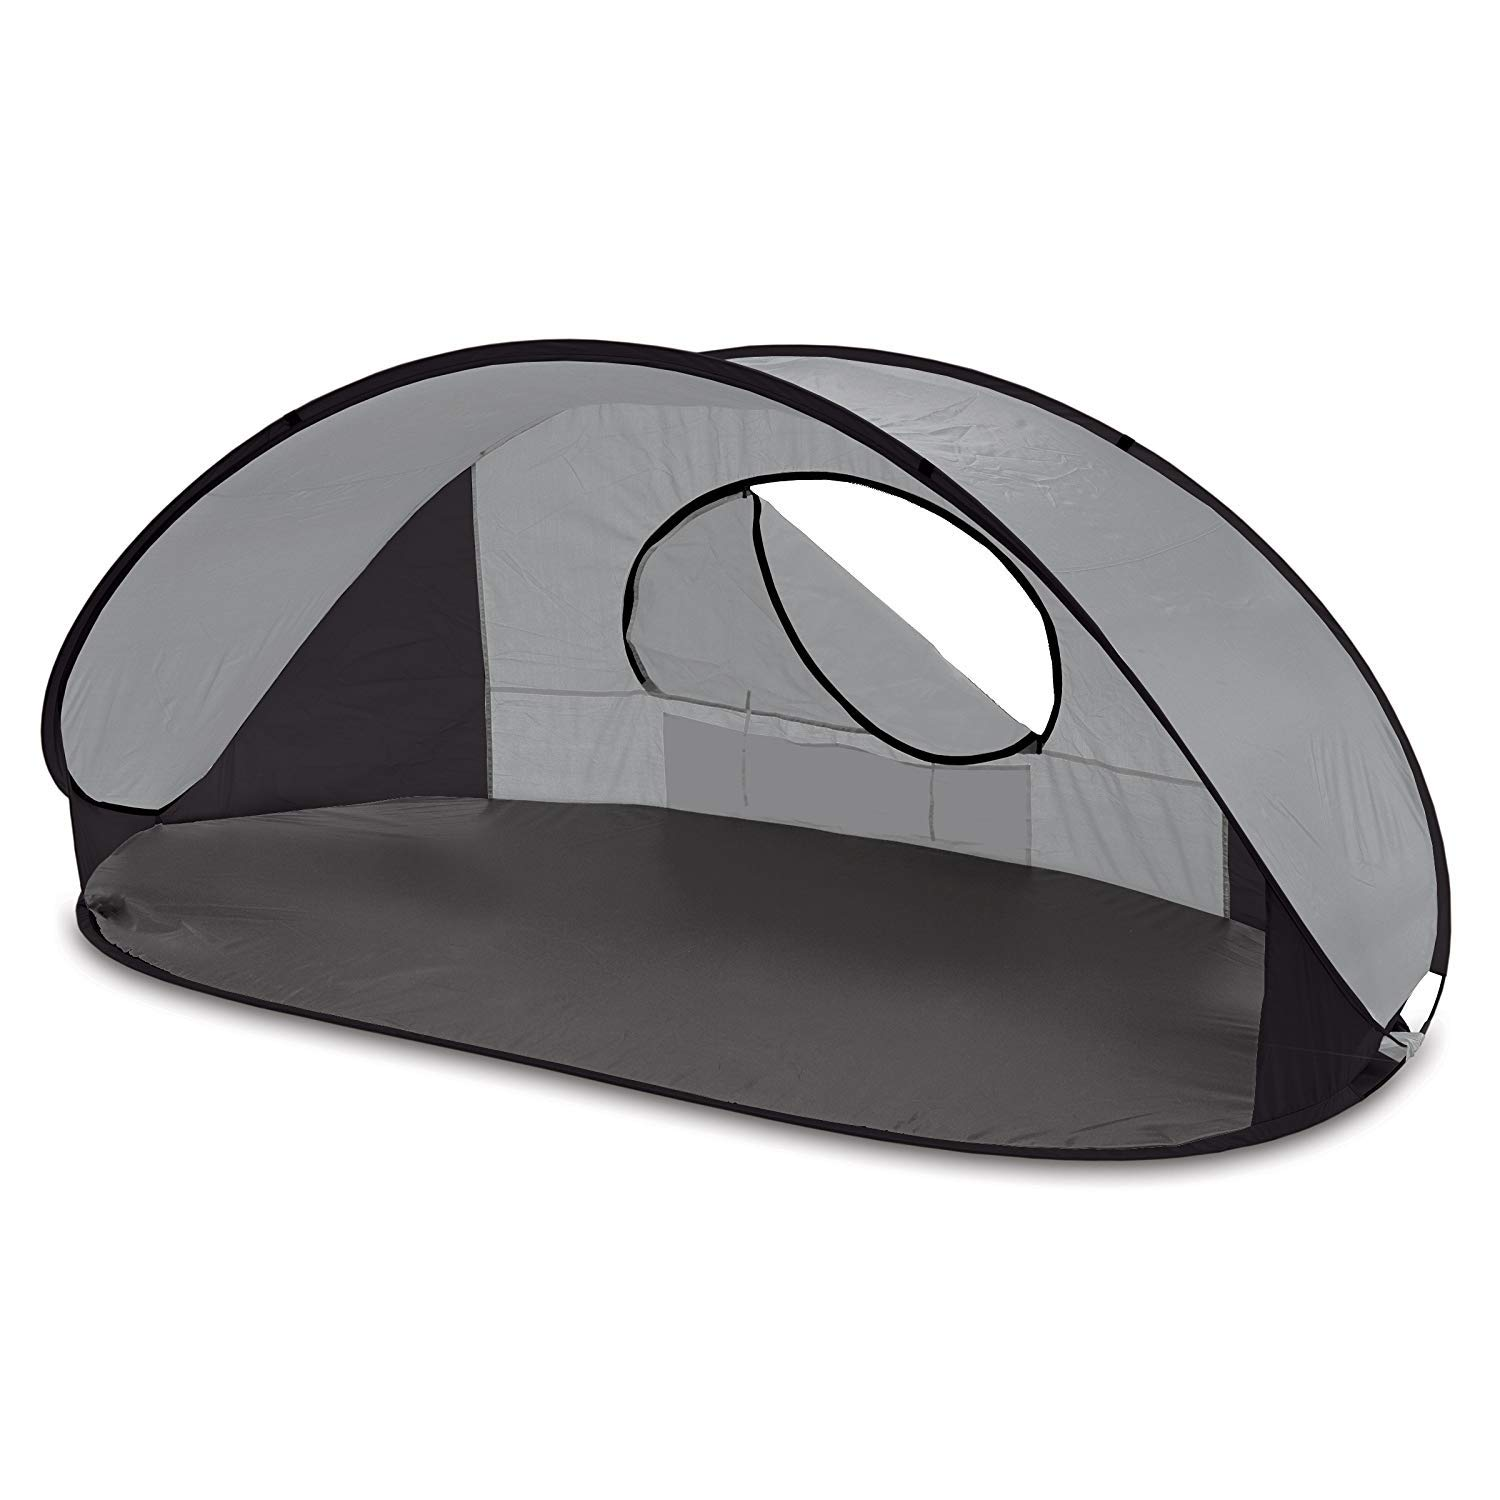 ONIVA - a Picnic Time Brand Manta Portable Pop-Up Sun/Wind Shelter, Gray by ONIVA - a Picnic Time brand